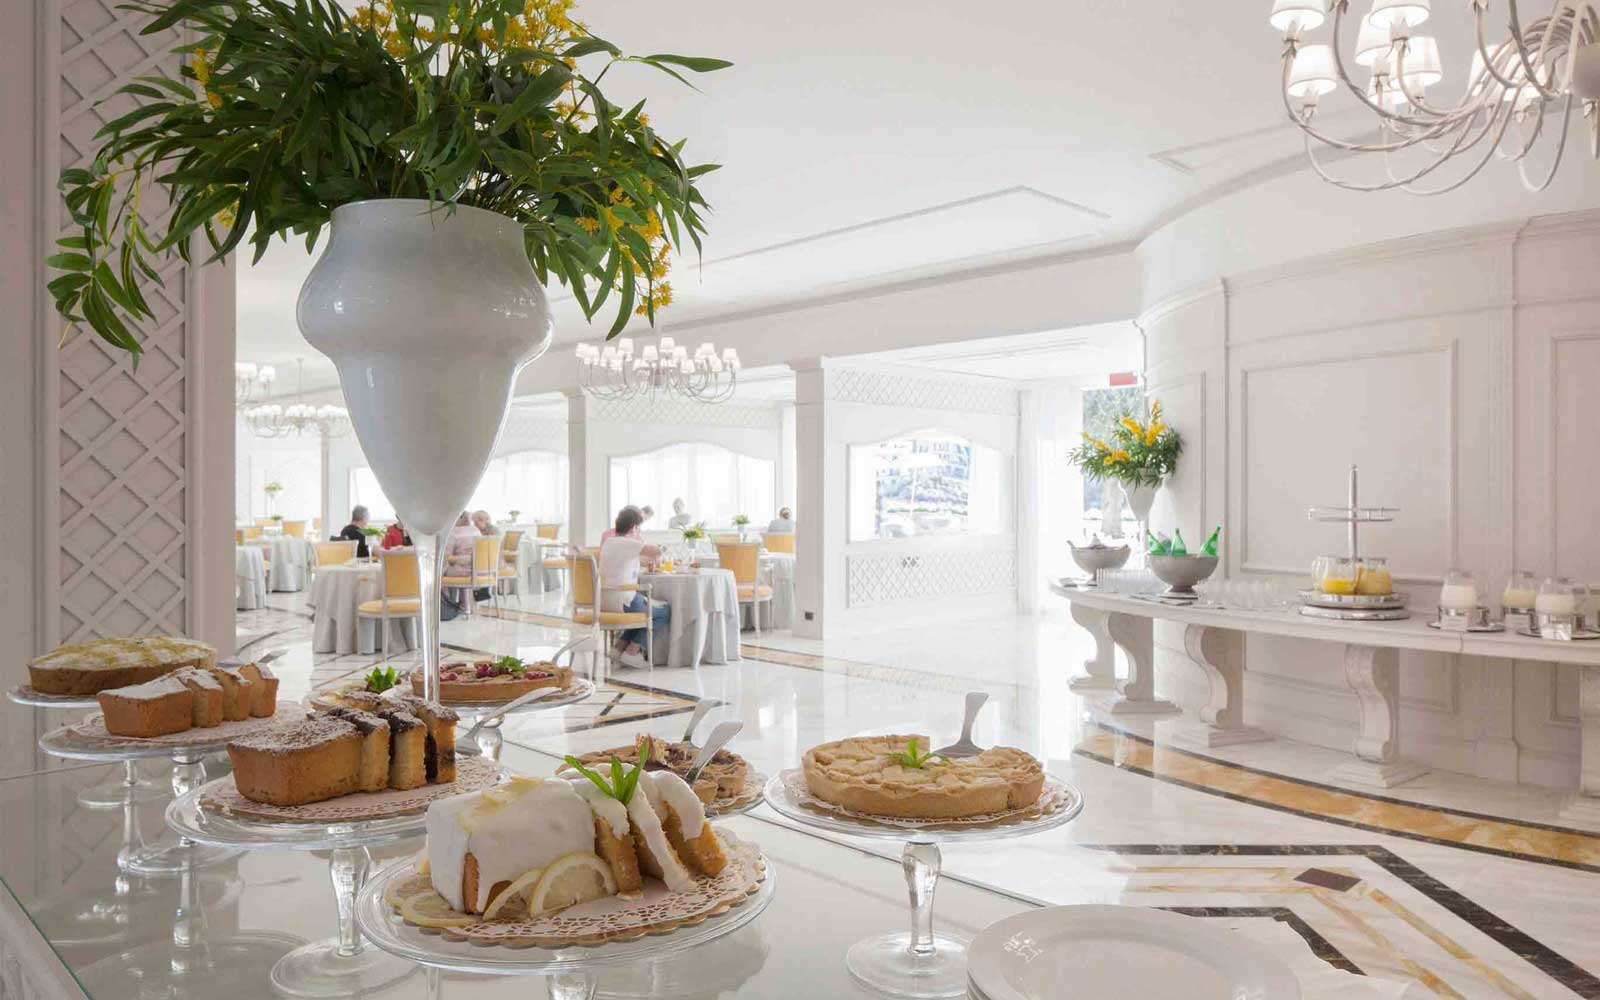 Breakfast at Grand Hotel Mazzaro Sea Palace